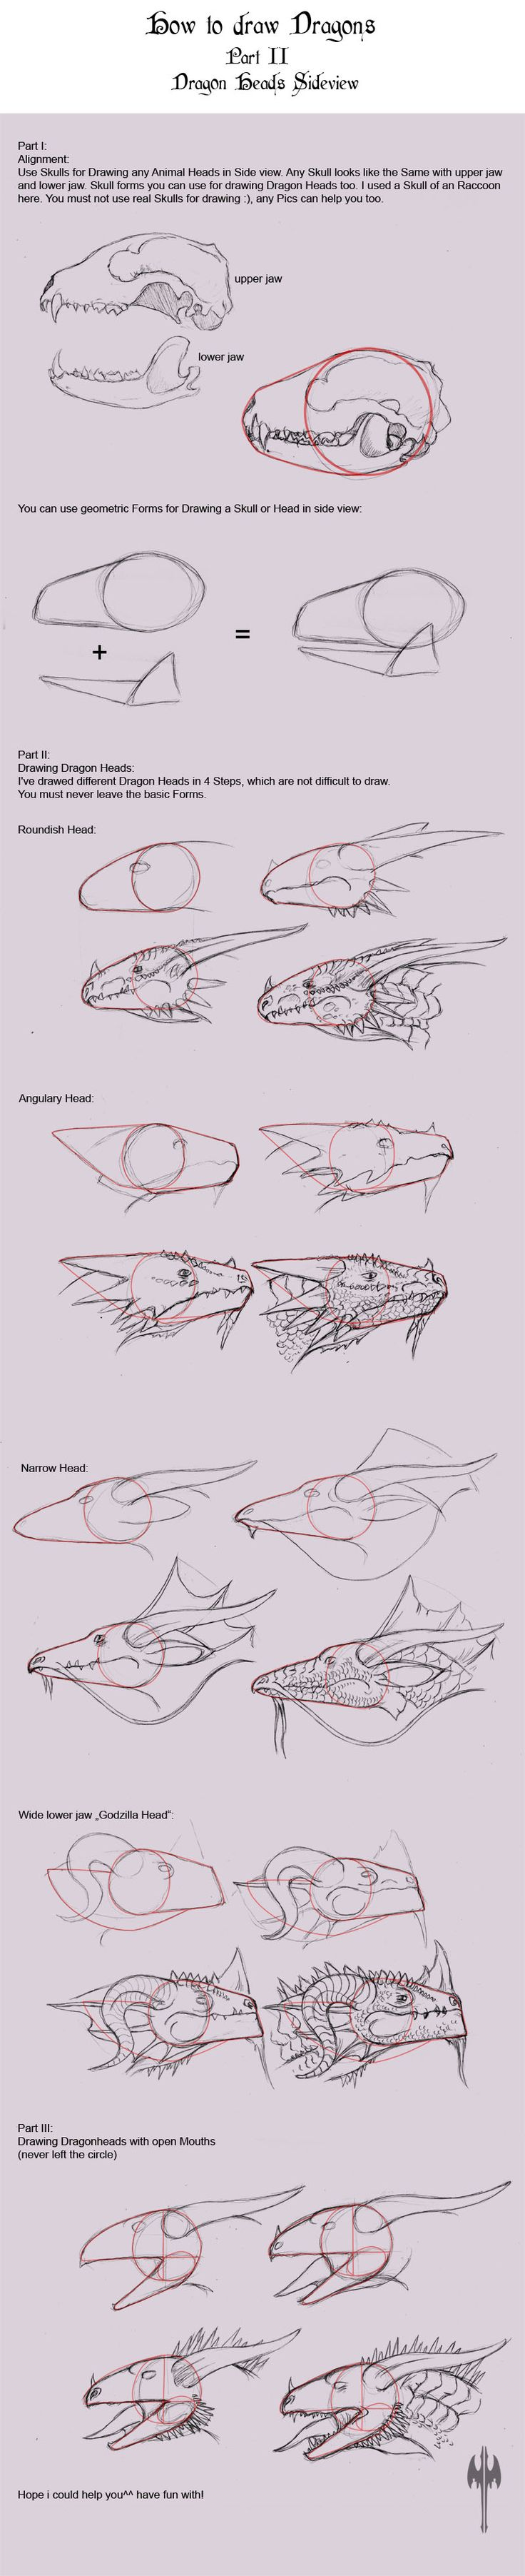 How To Draw Dragons Ii By Sheranuva On Deviantart